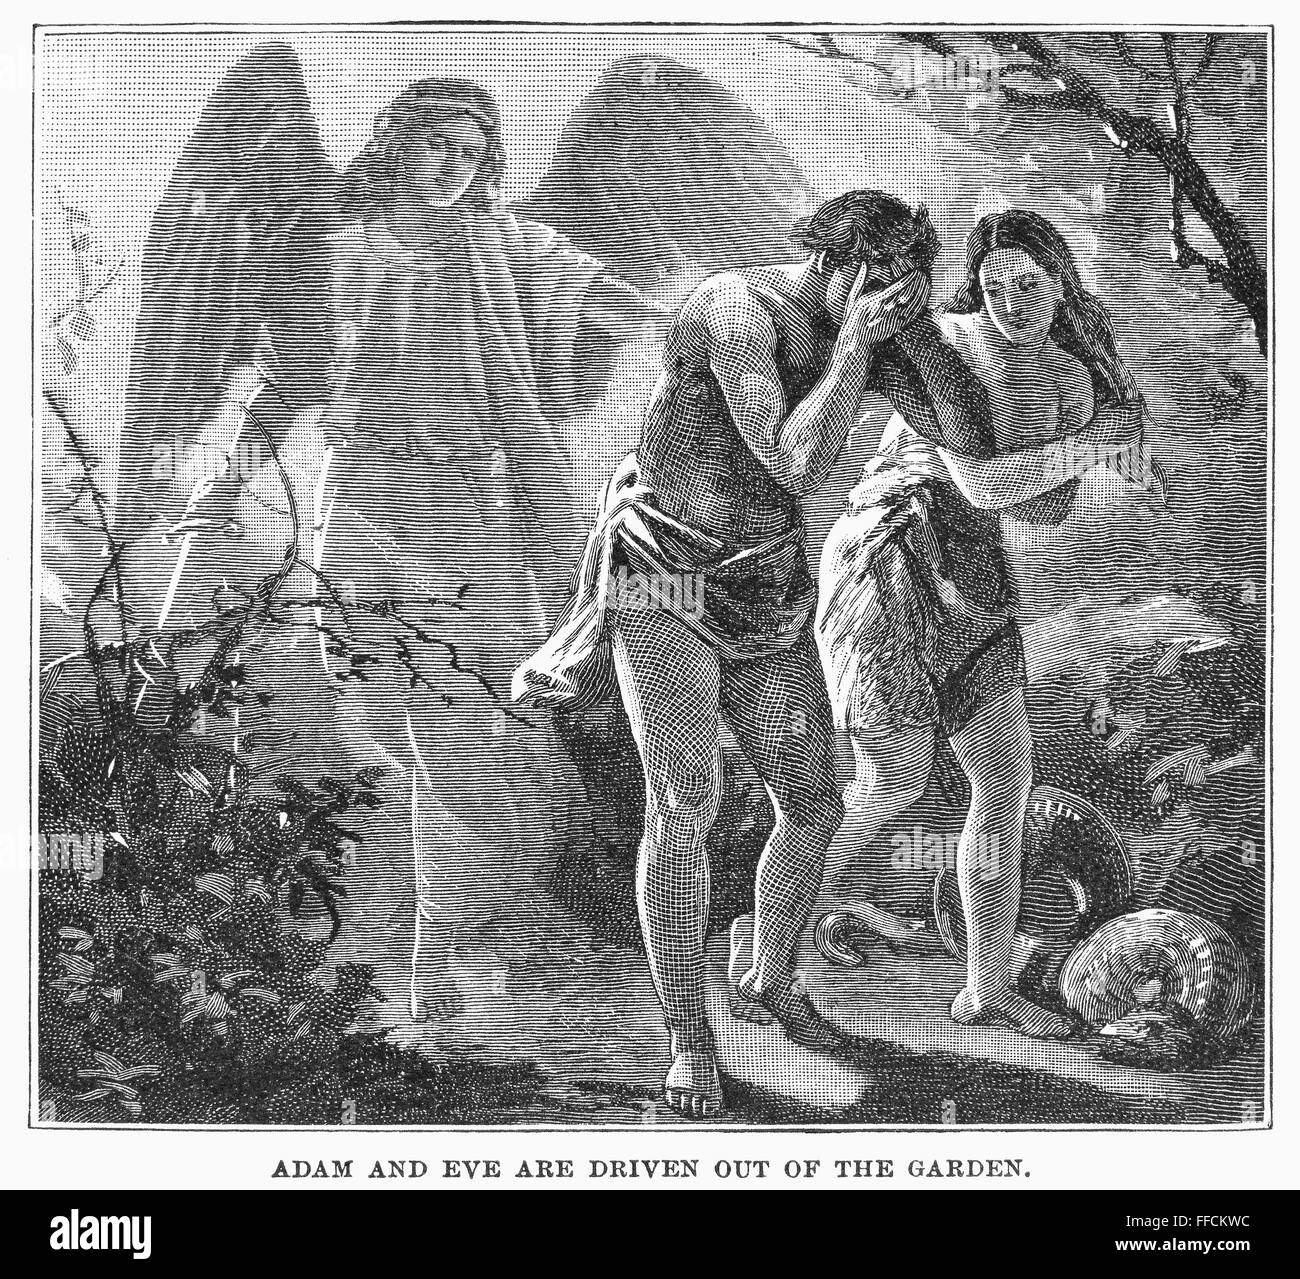 the tempest and adam eve The tempest explores such questions, often in biblical terms shakespeare's island is a kind of eden, presided over by the god-like figure of prospero, with ferdinand and miranda as a version of adam and eve, and ariel and caliban and angel and devil.